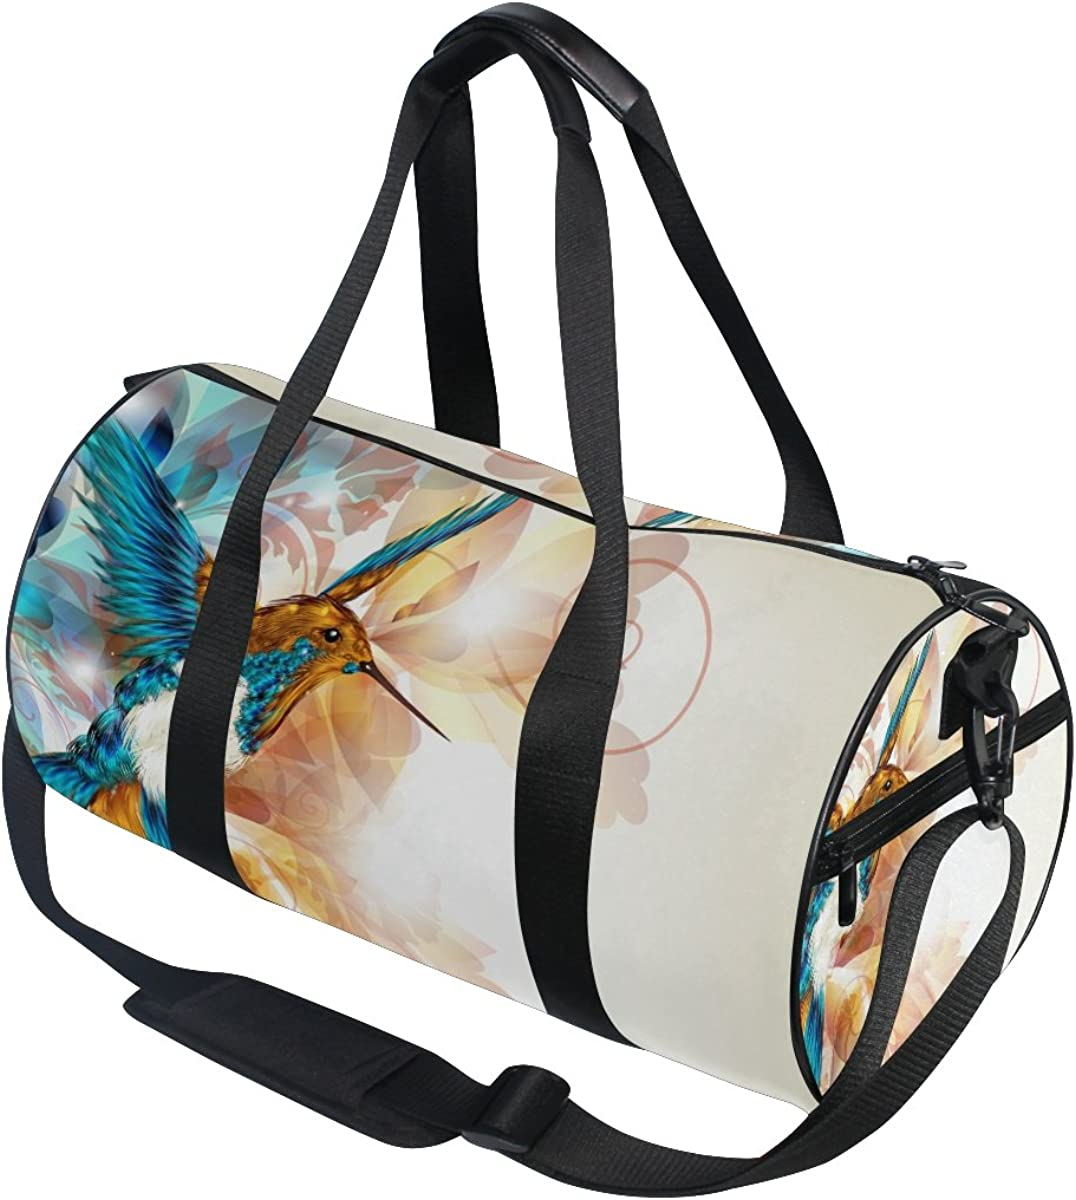 Evolutions Colorful Realistic Hummingbird Travel Duffel Bag Sports Gym Bag For Men /& Women